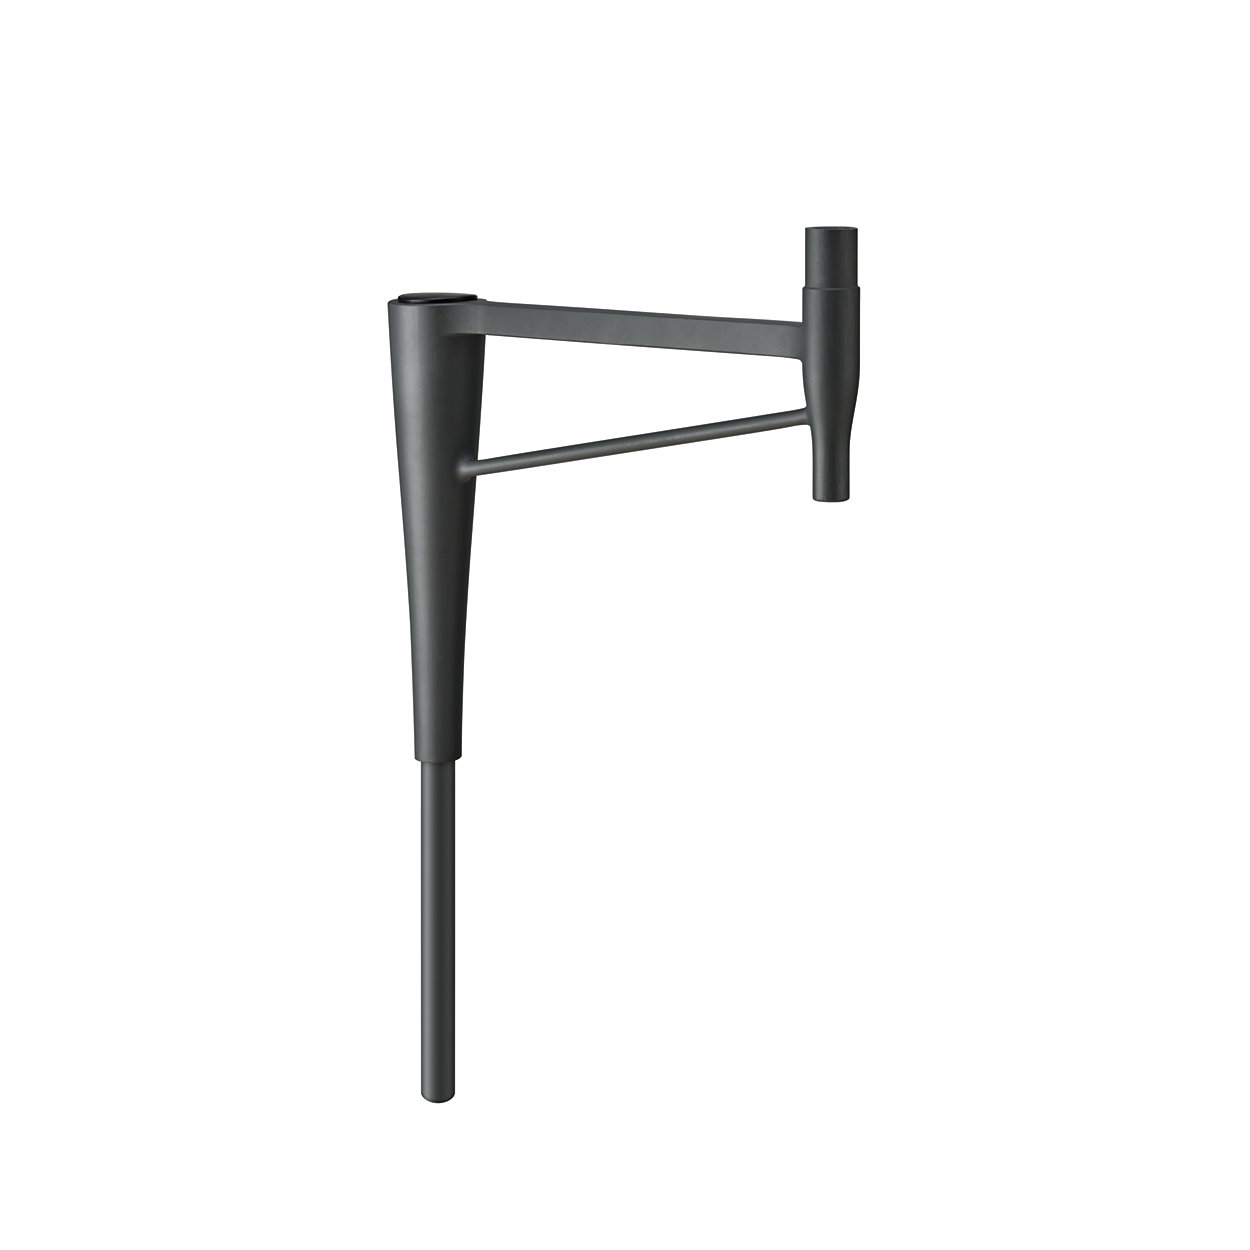 CityCharm poles and brackets - combining ambiance and optimum performance